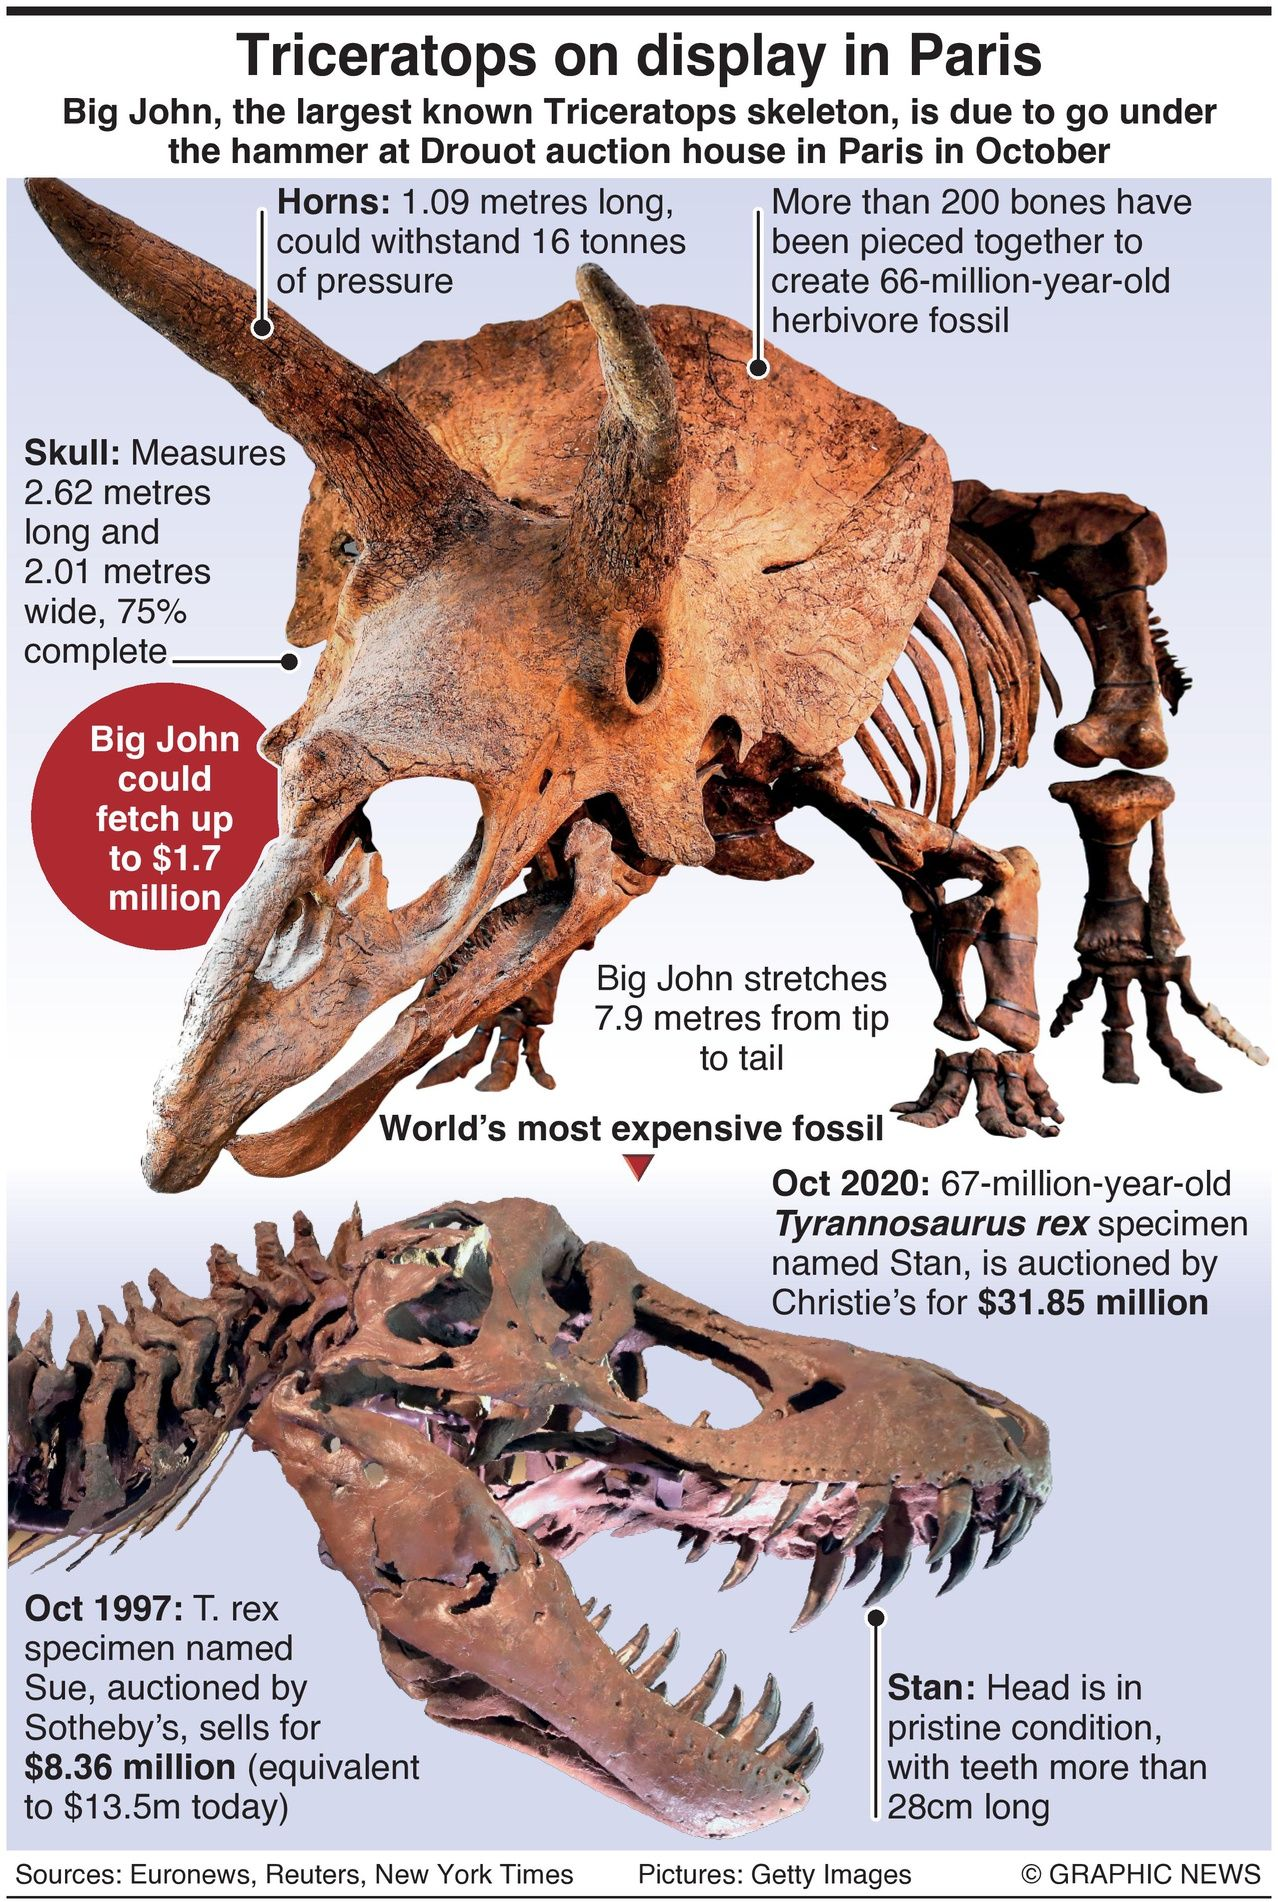 World's Largest Triceratops Goes Under Hammer